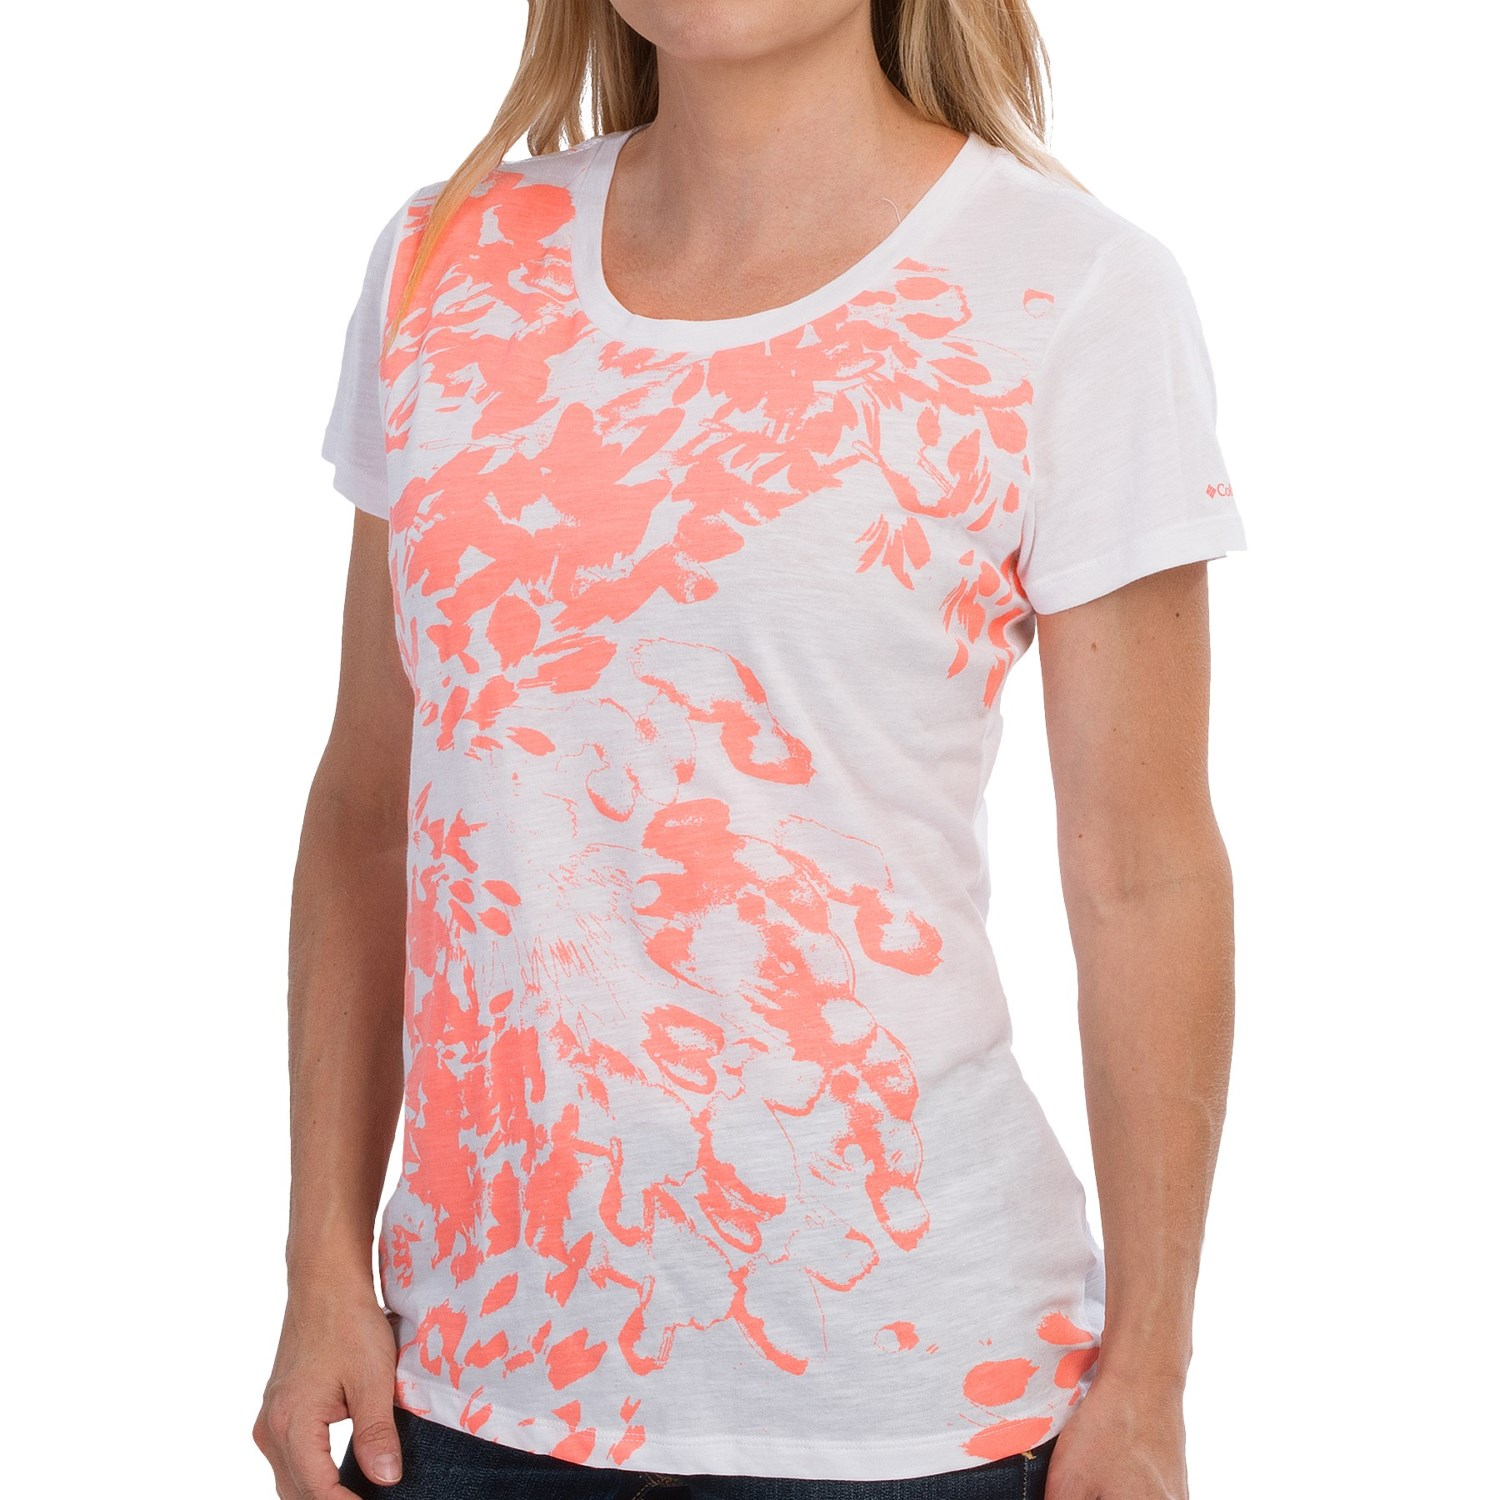 Columbia sportswear flawless floral t shirt for women for White floral shirt womens